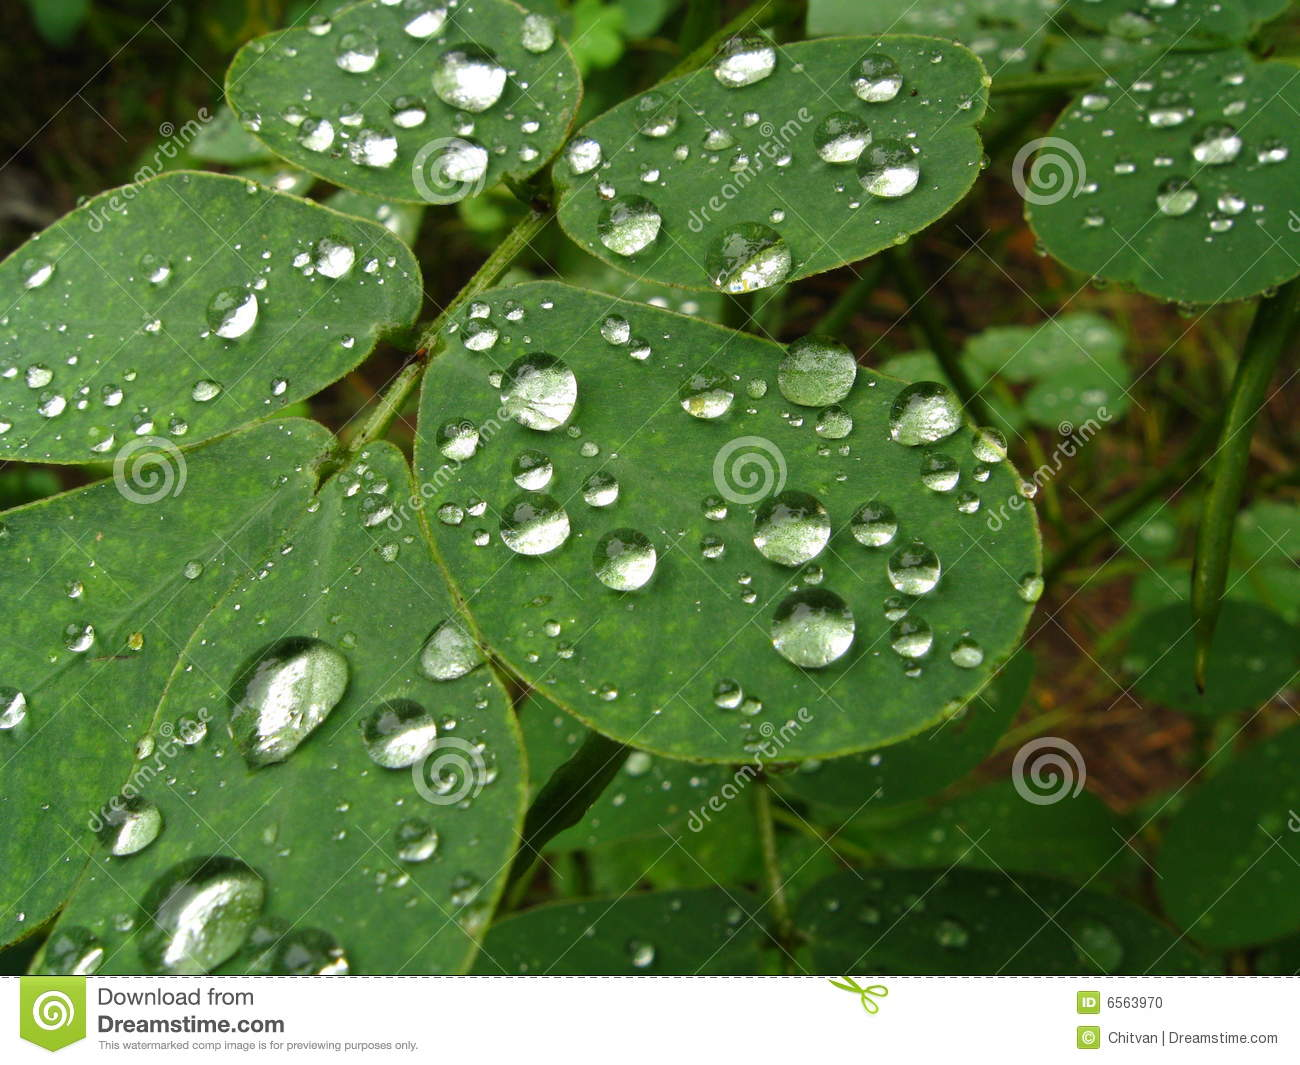 1000+ images about ❤ Dew Drops on Pinterest.